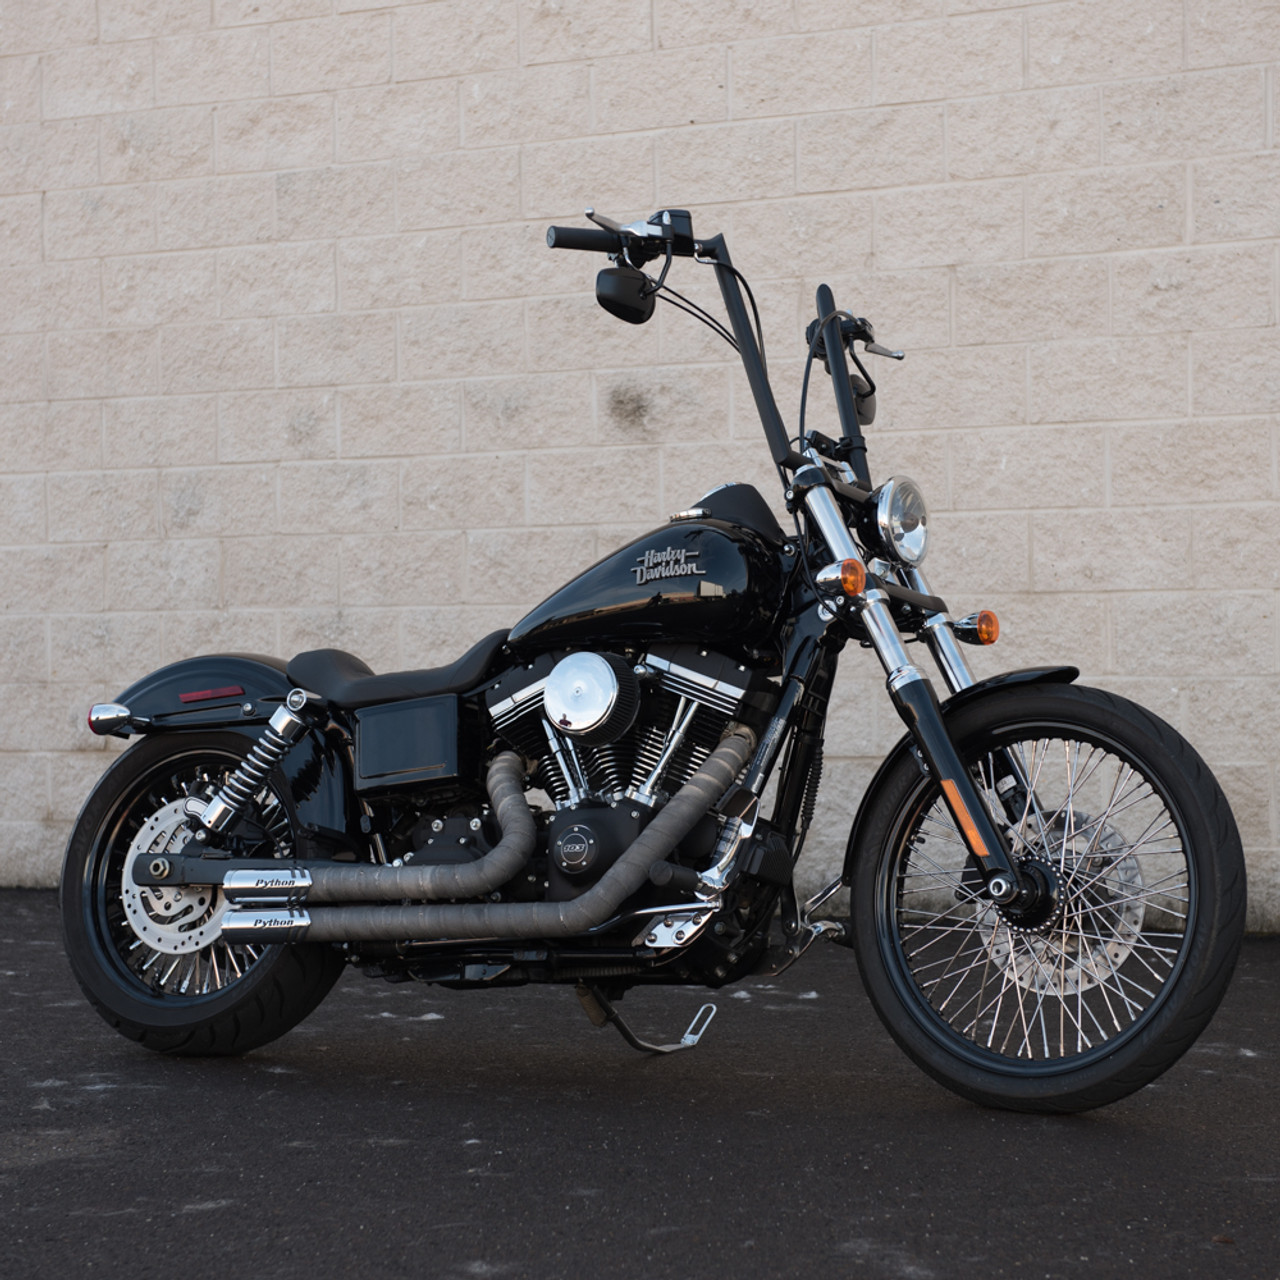 Mustang Tripper Solo Seat for 2006-2017 Harley Dyna - Tuck and Roll